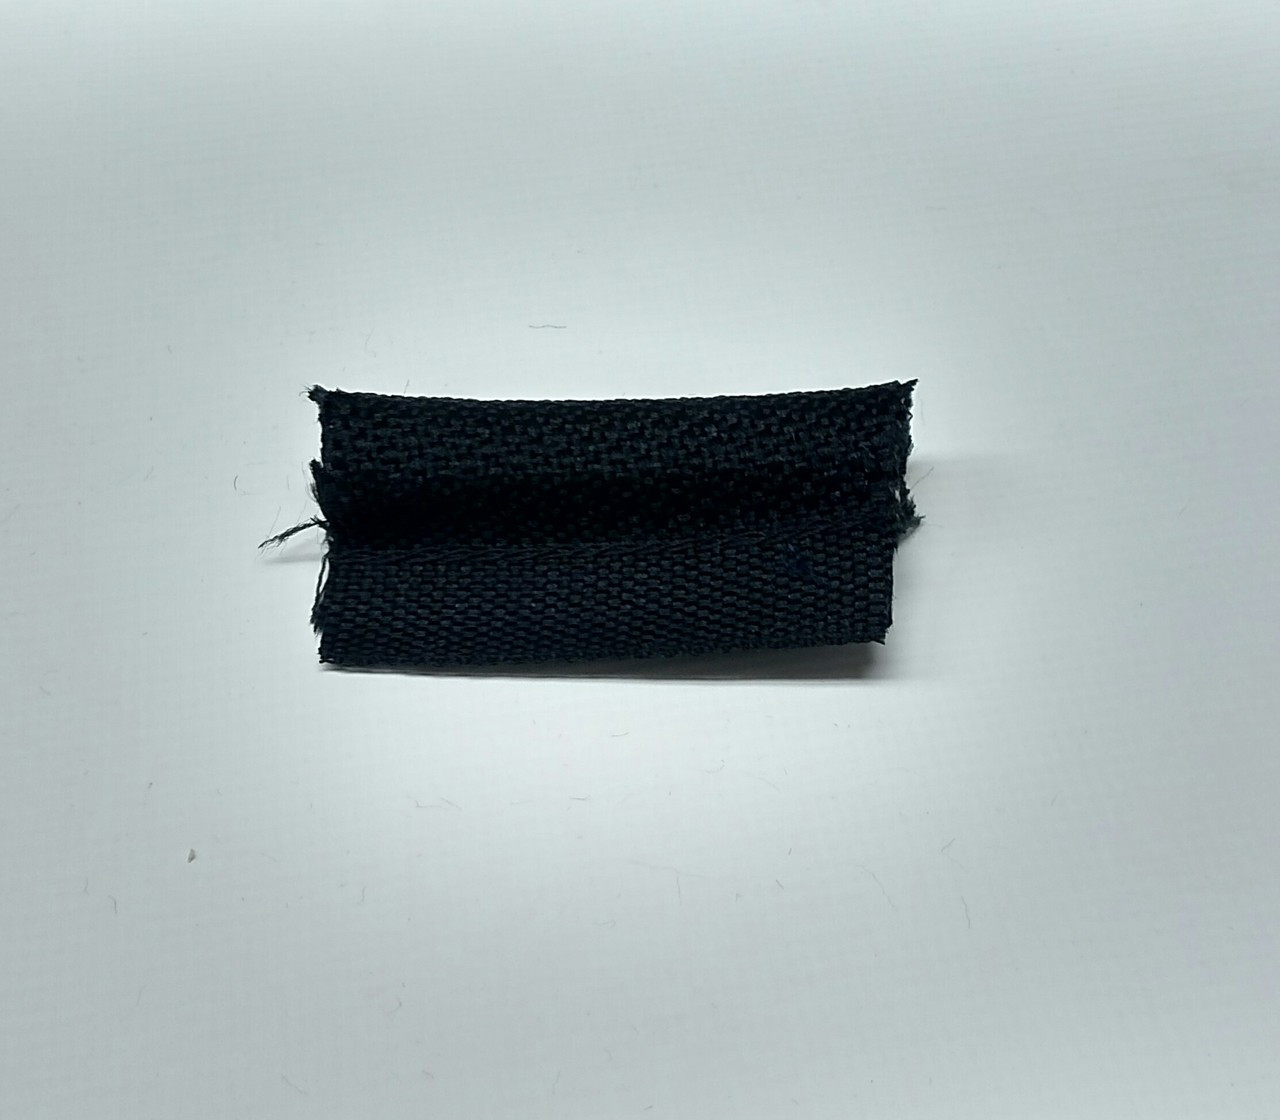 Stitched Cloth Windlace Black - FREE SHIPPING ONLINE ONLY!